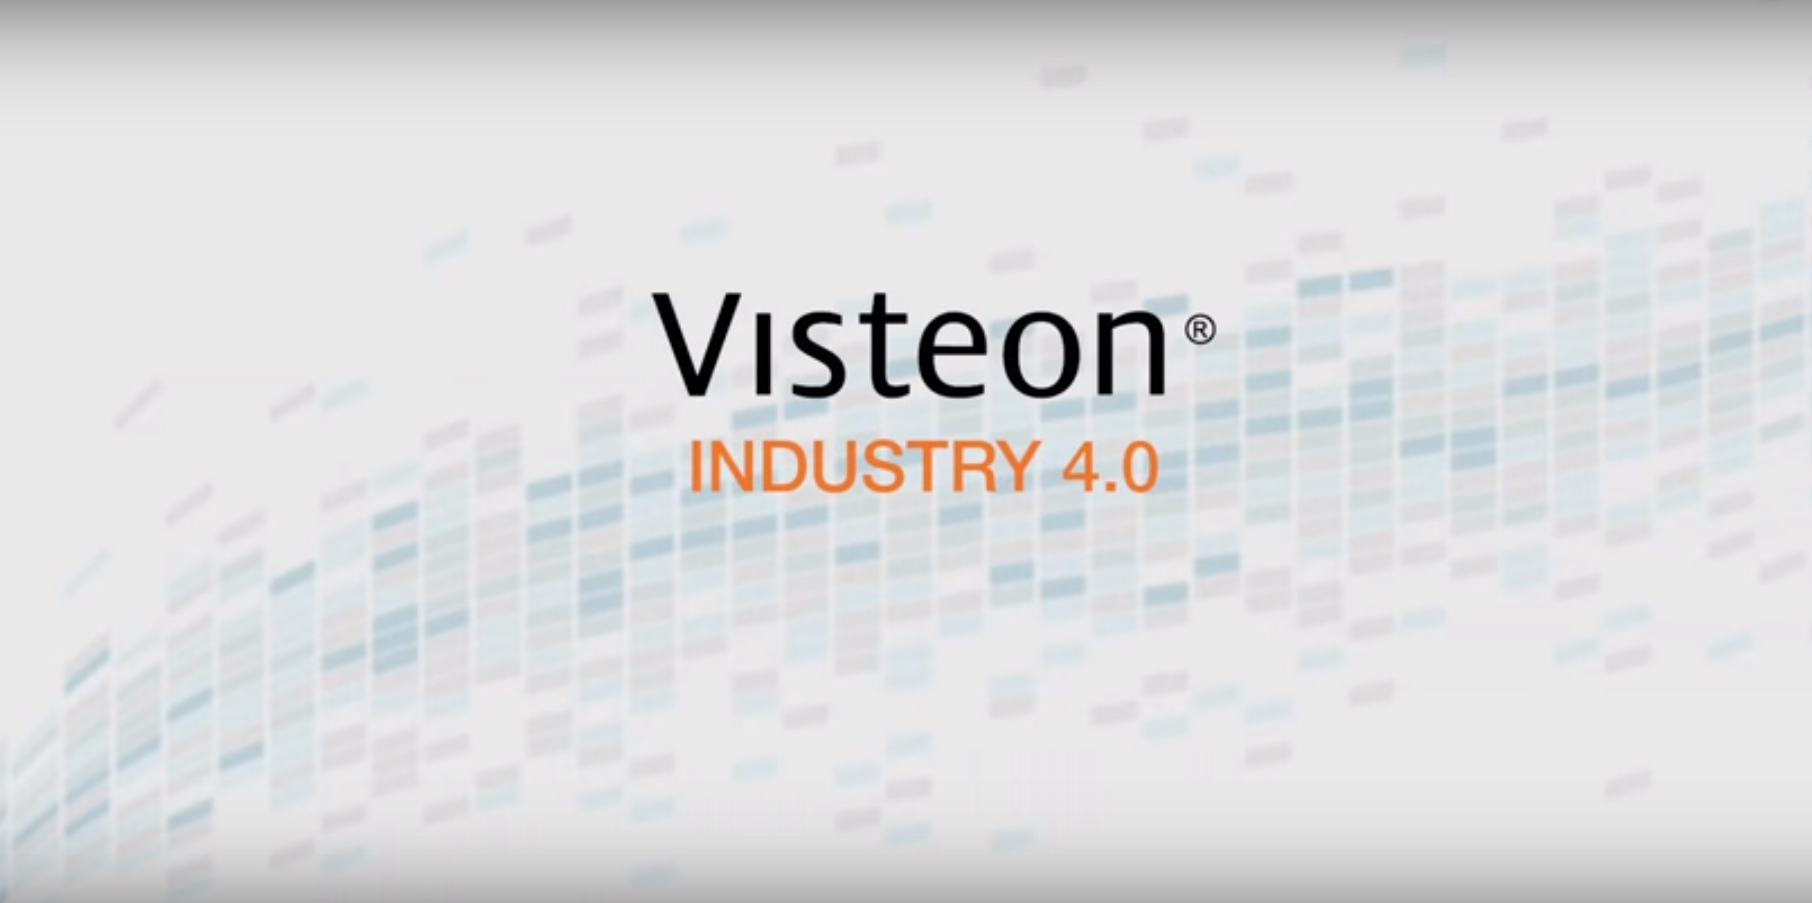 Visteon Industry 4.0